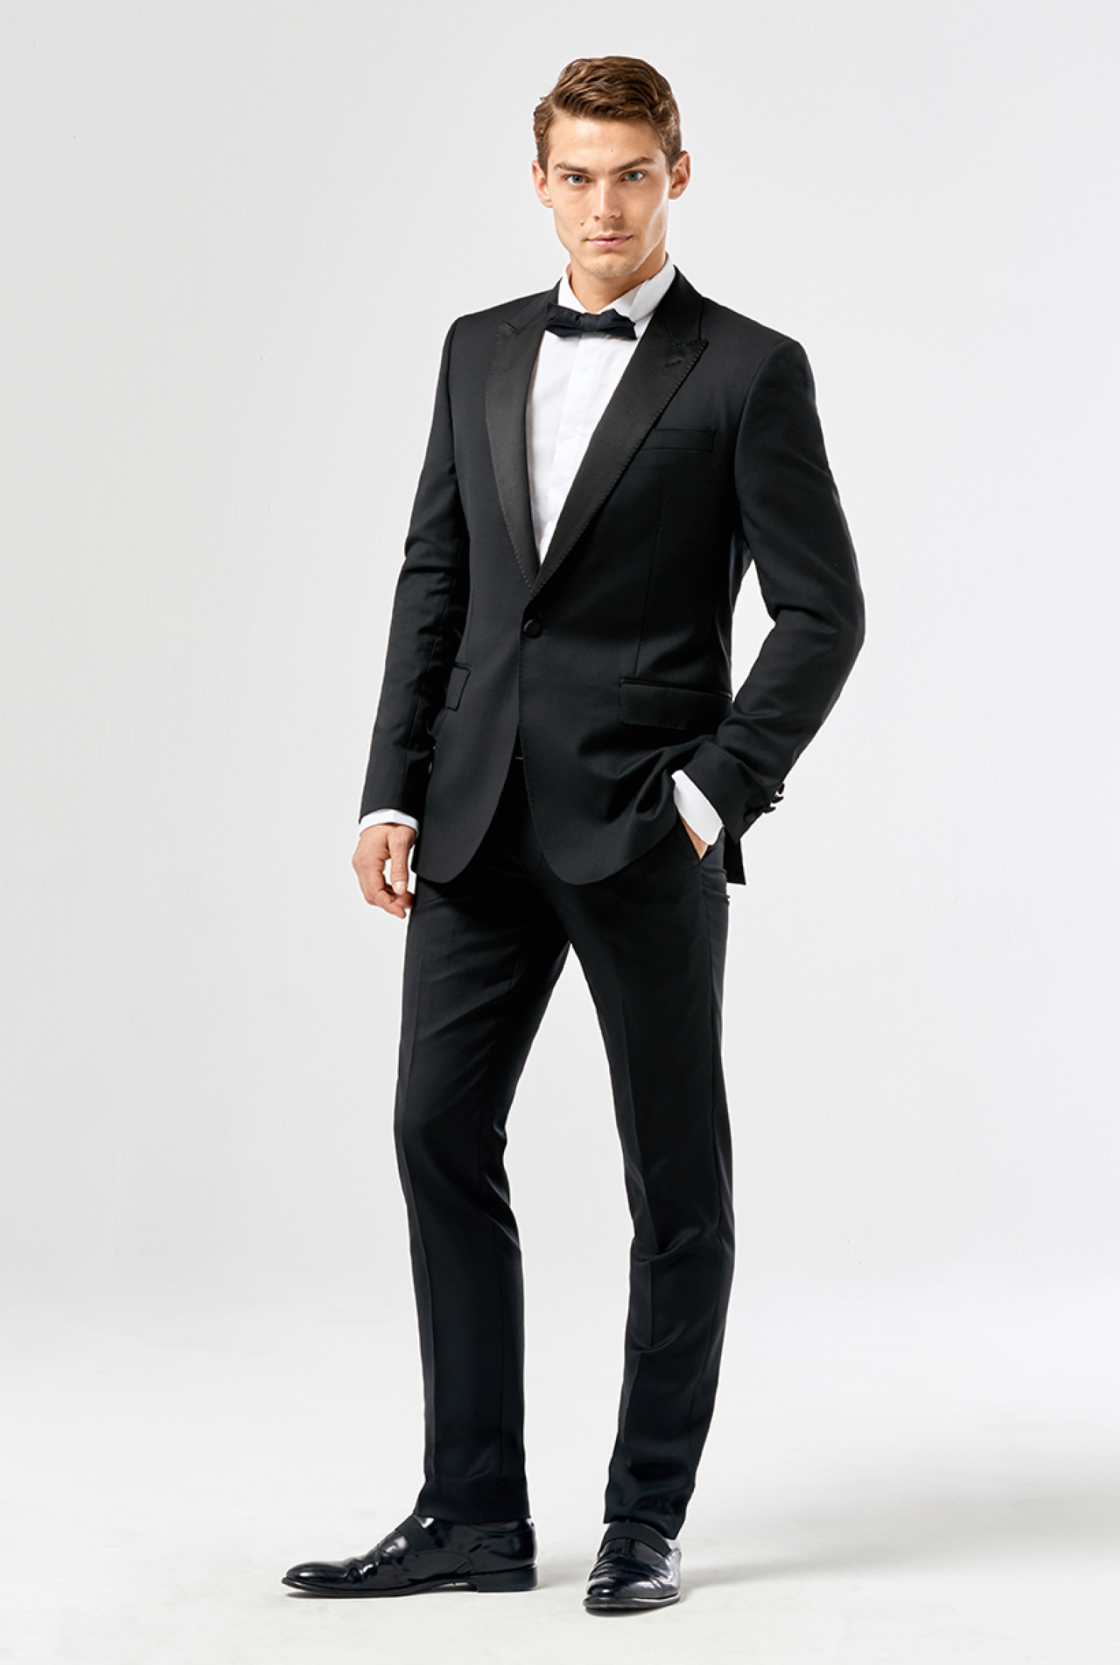 0e196d10e50d6 Whether you're a groom to be looking for the perfect get up to wear on your  big day or a bride to be searching for some inspo to leave around as a ...